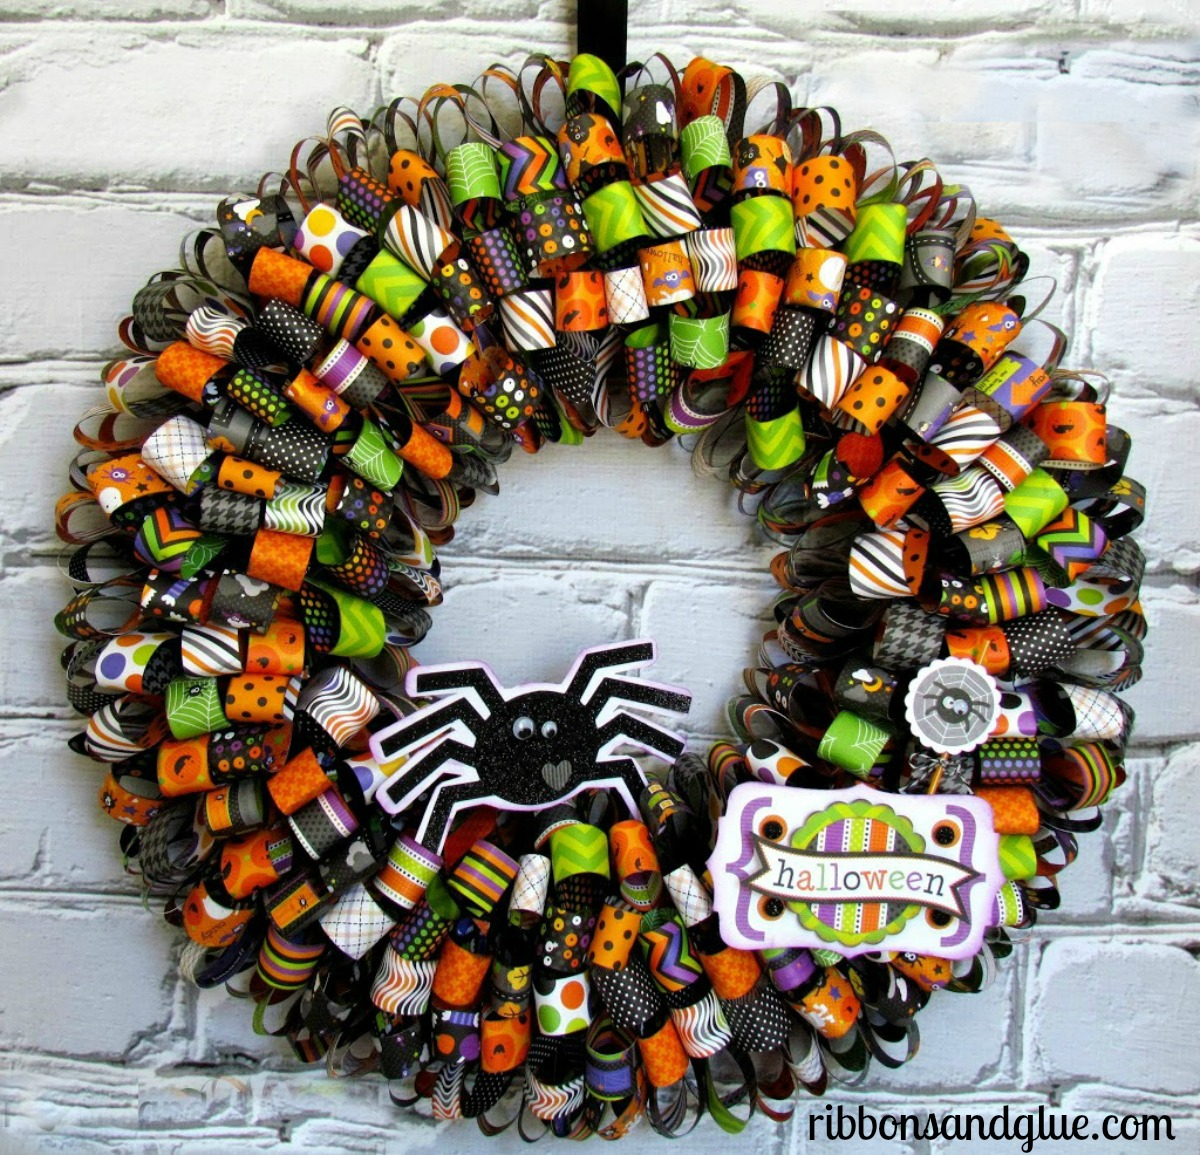 How to make a Paper Ribbon Wreath for Halloween